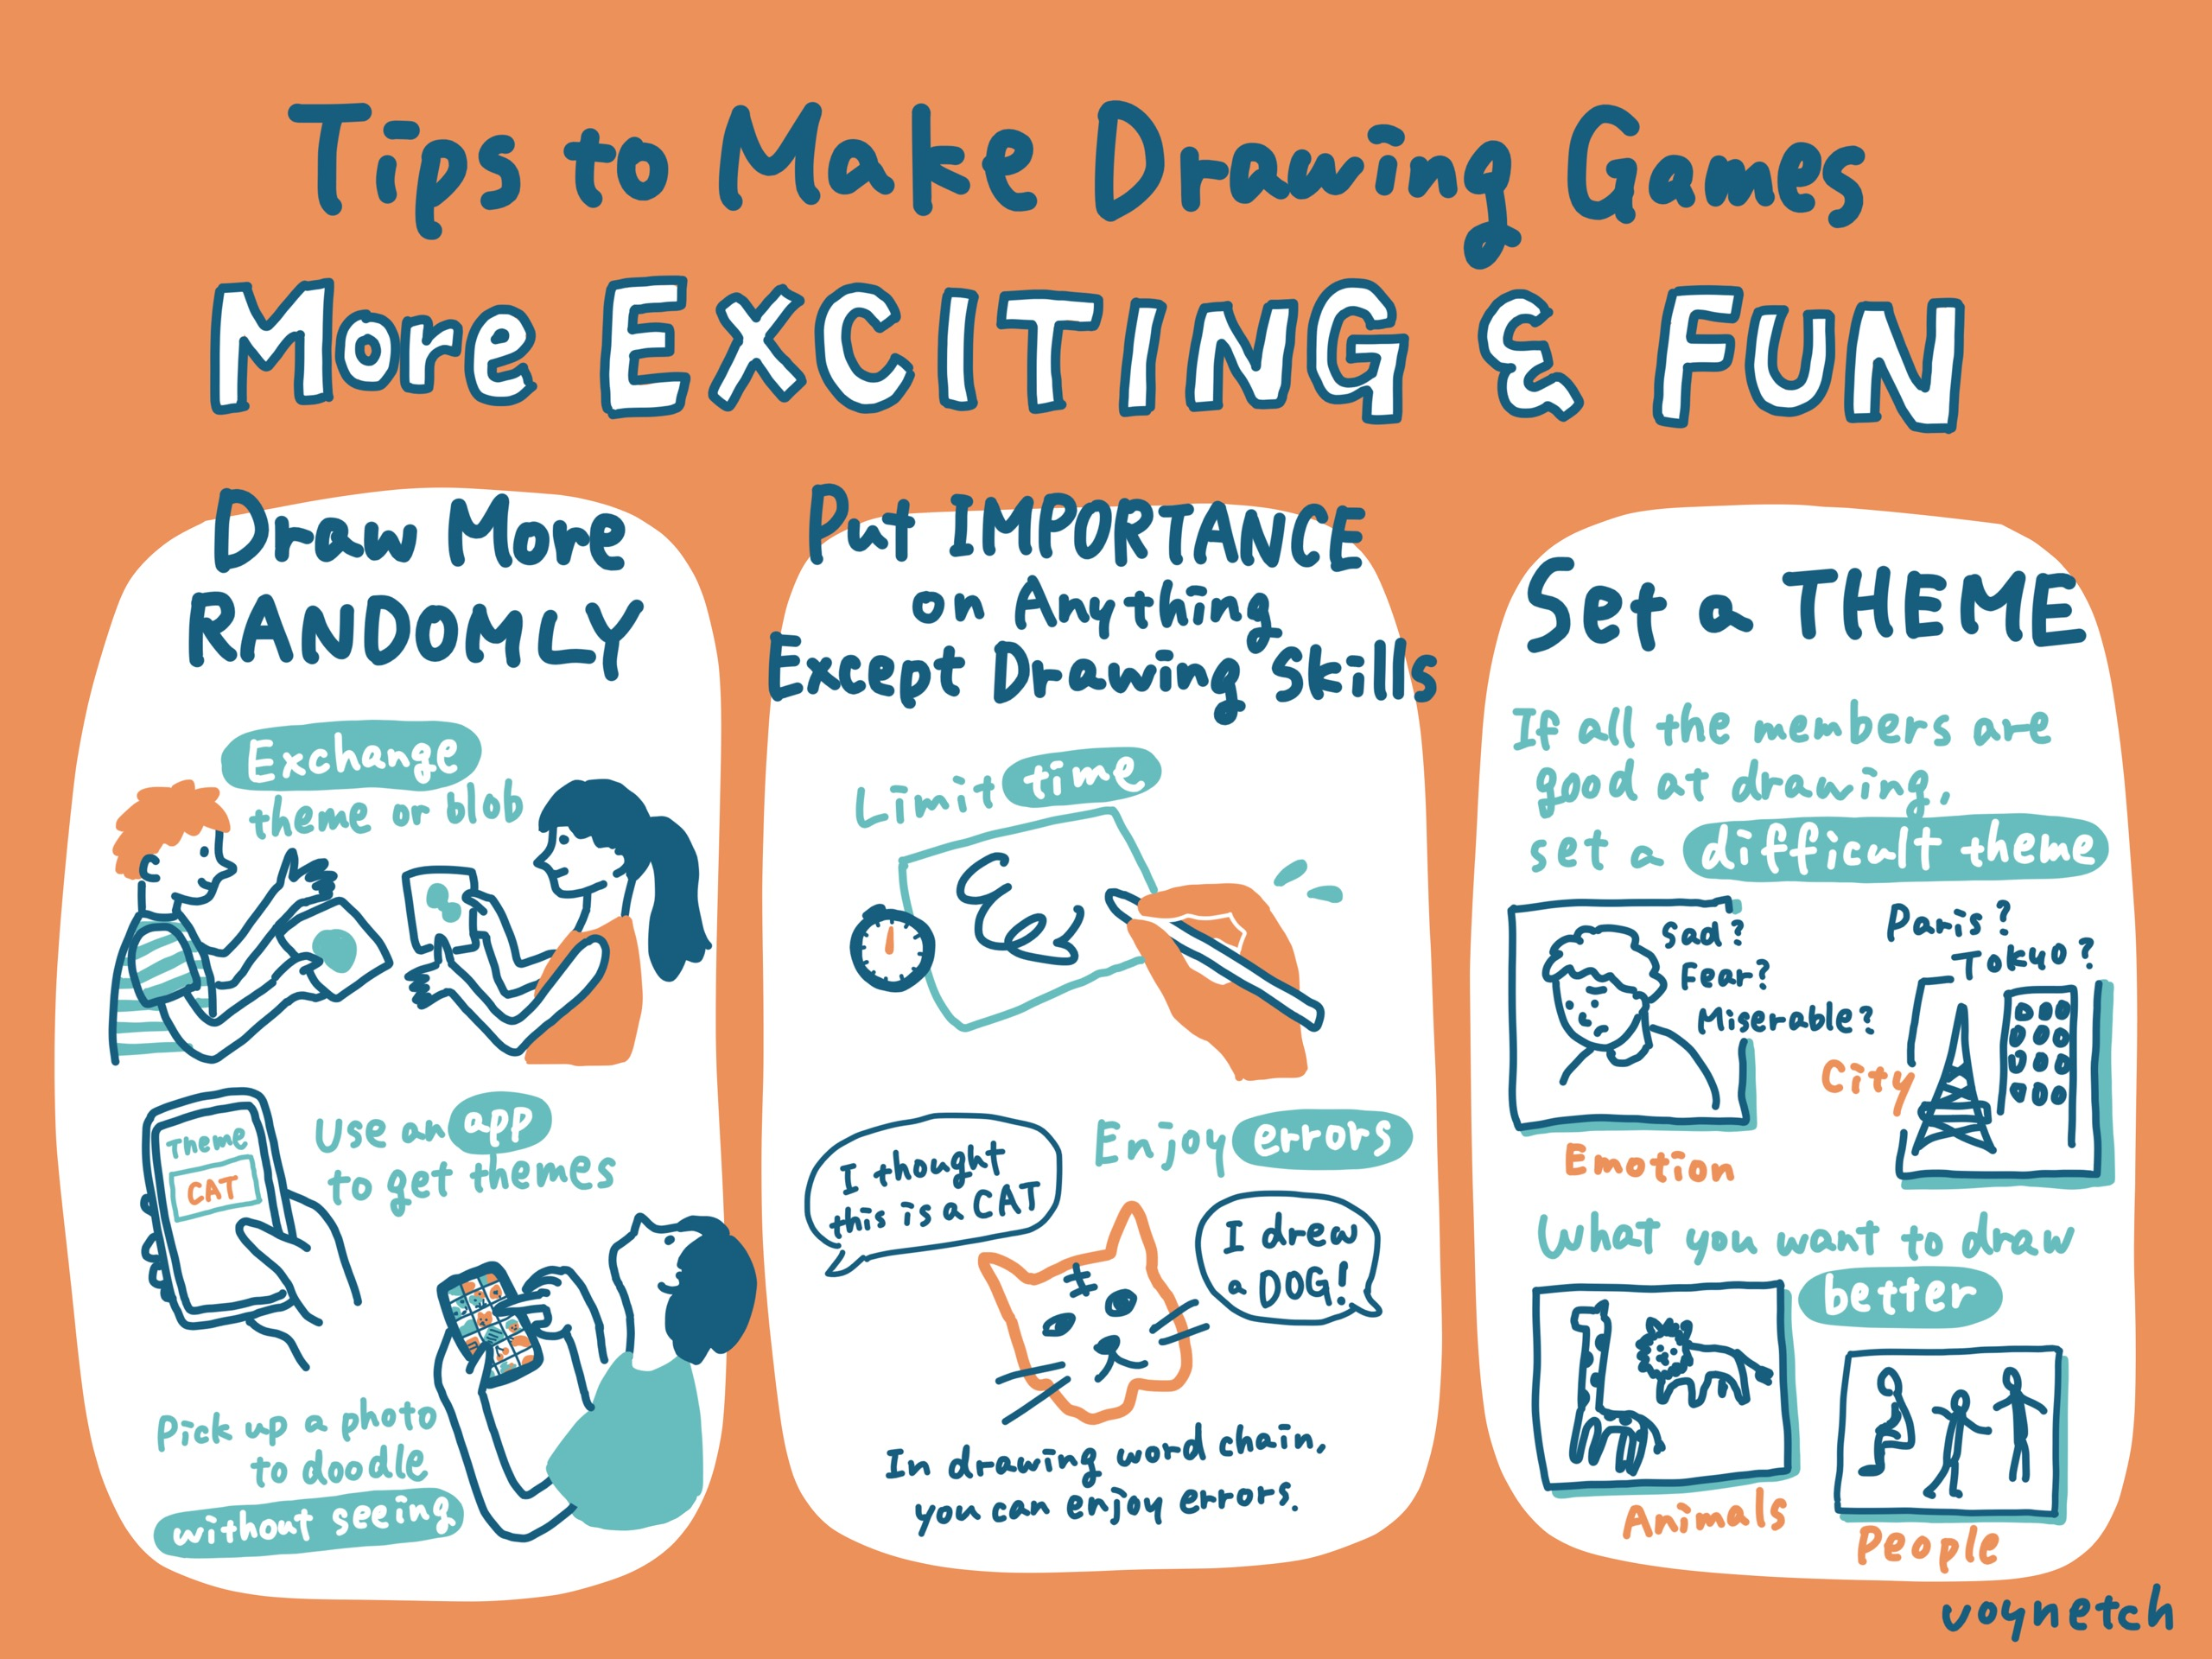 Tips to Make Drawing Games More Exciting & Fun Image (1/1)